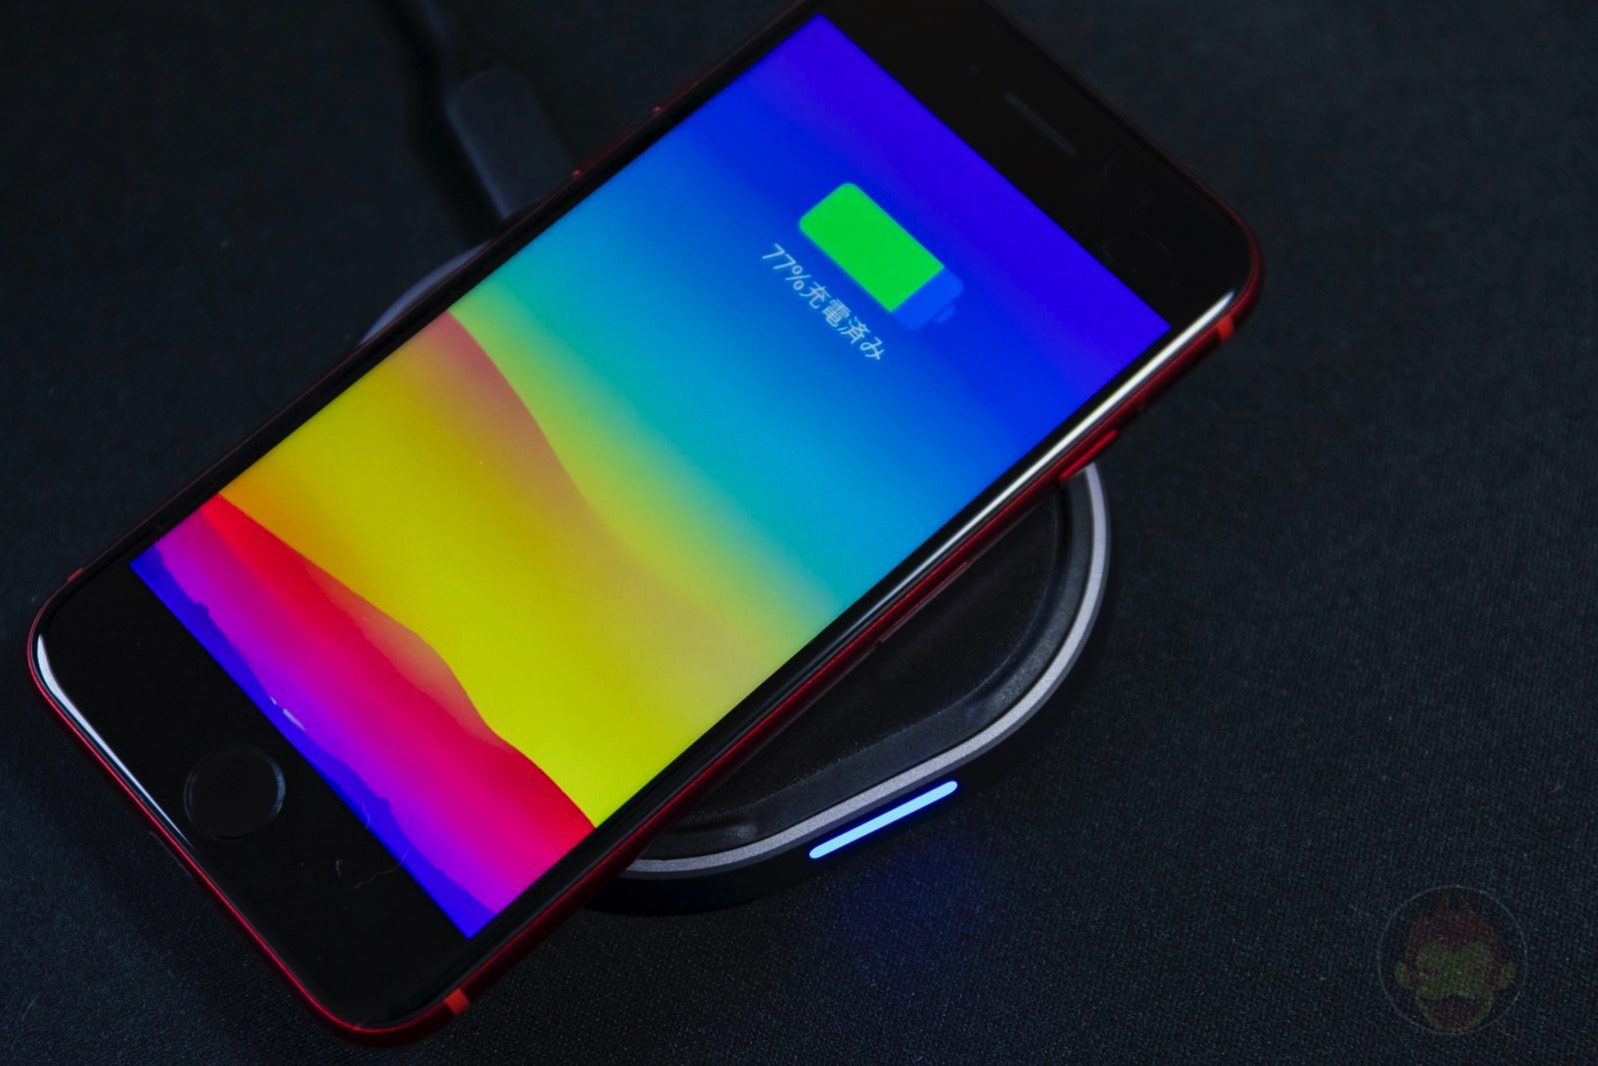 TUNEWEAR 10W Plus WIRELESS CHARGER 07